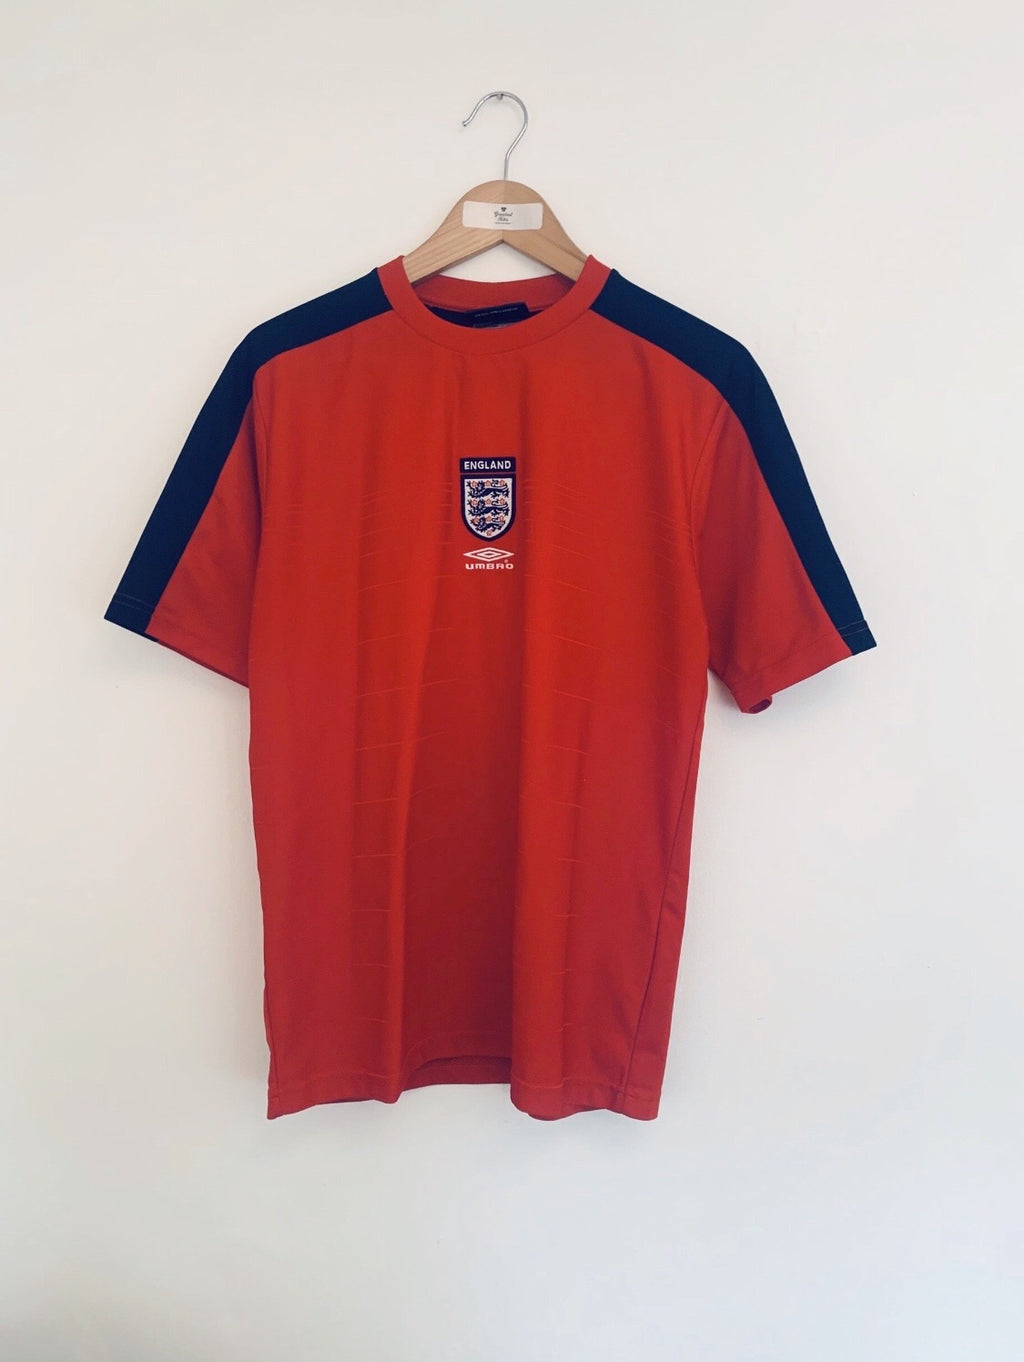 2000/01 England Training Shirt (M) 9/10